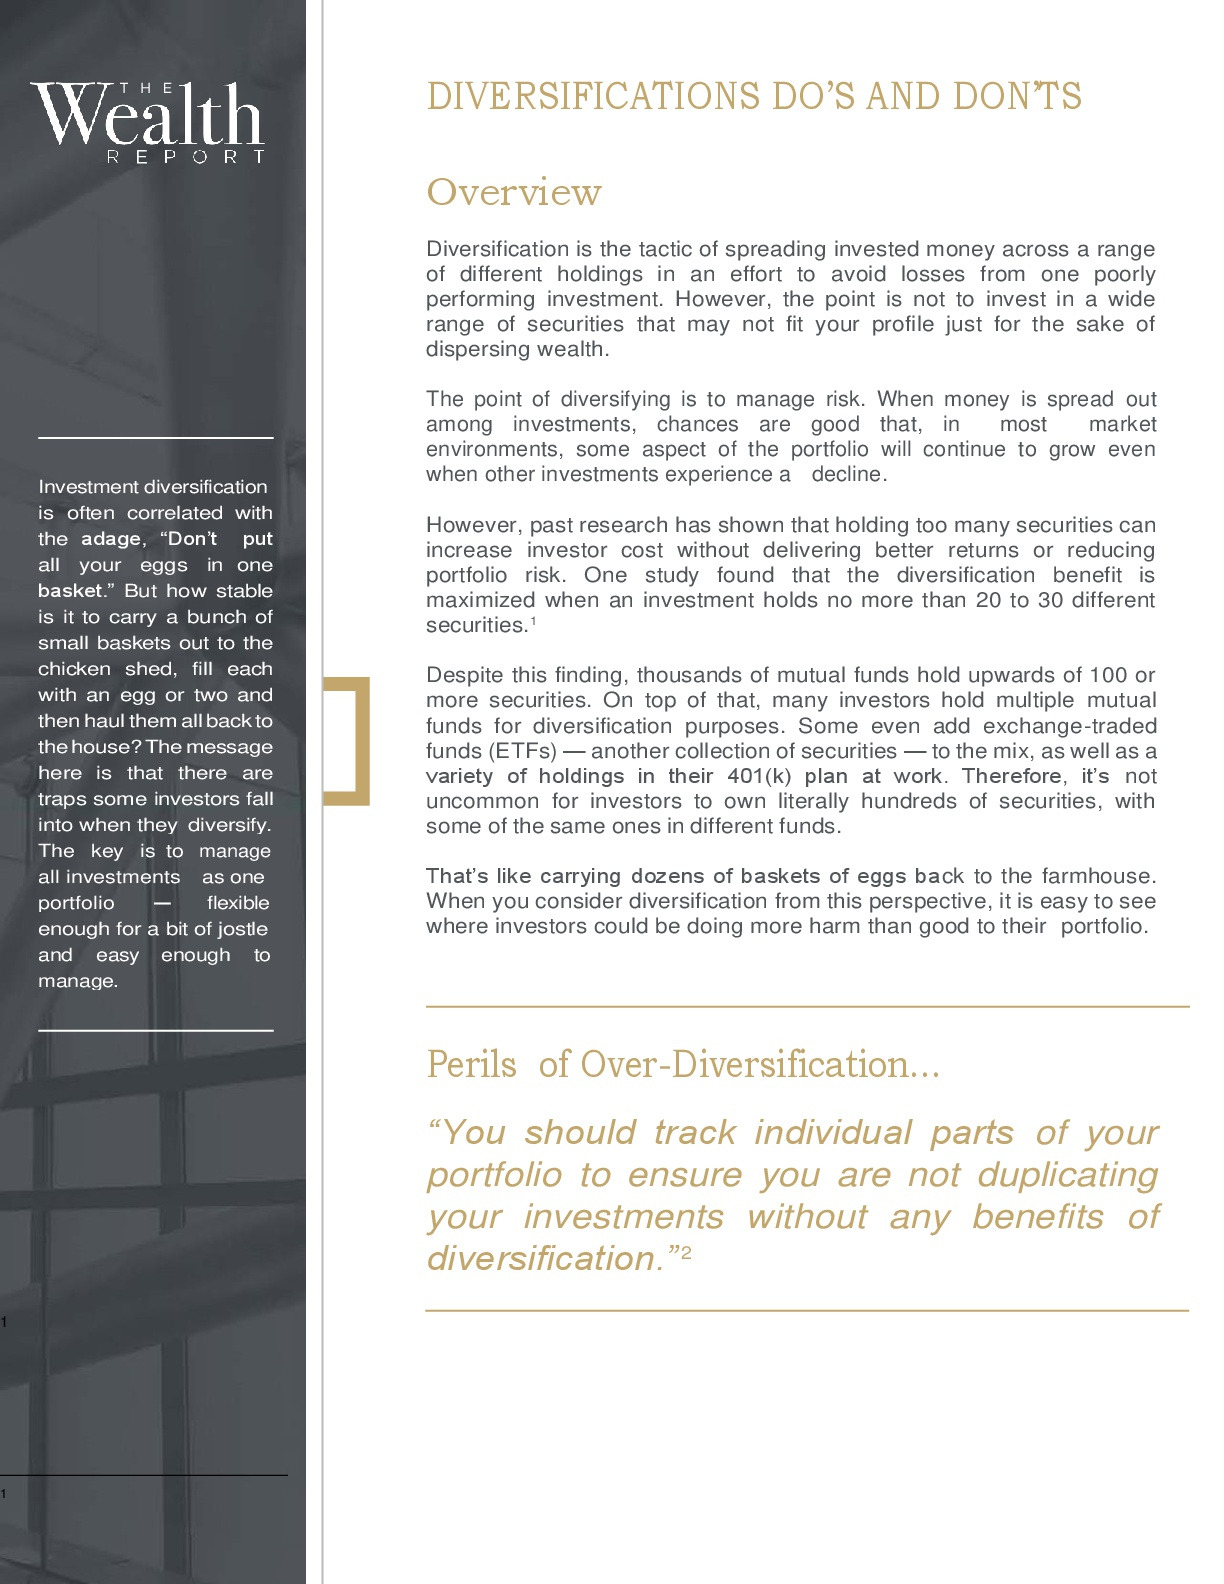 diversification-dos-and-donts-001.jpg